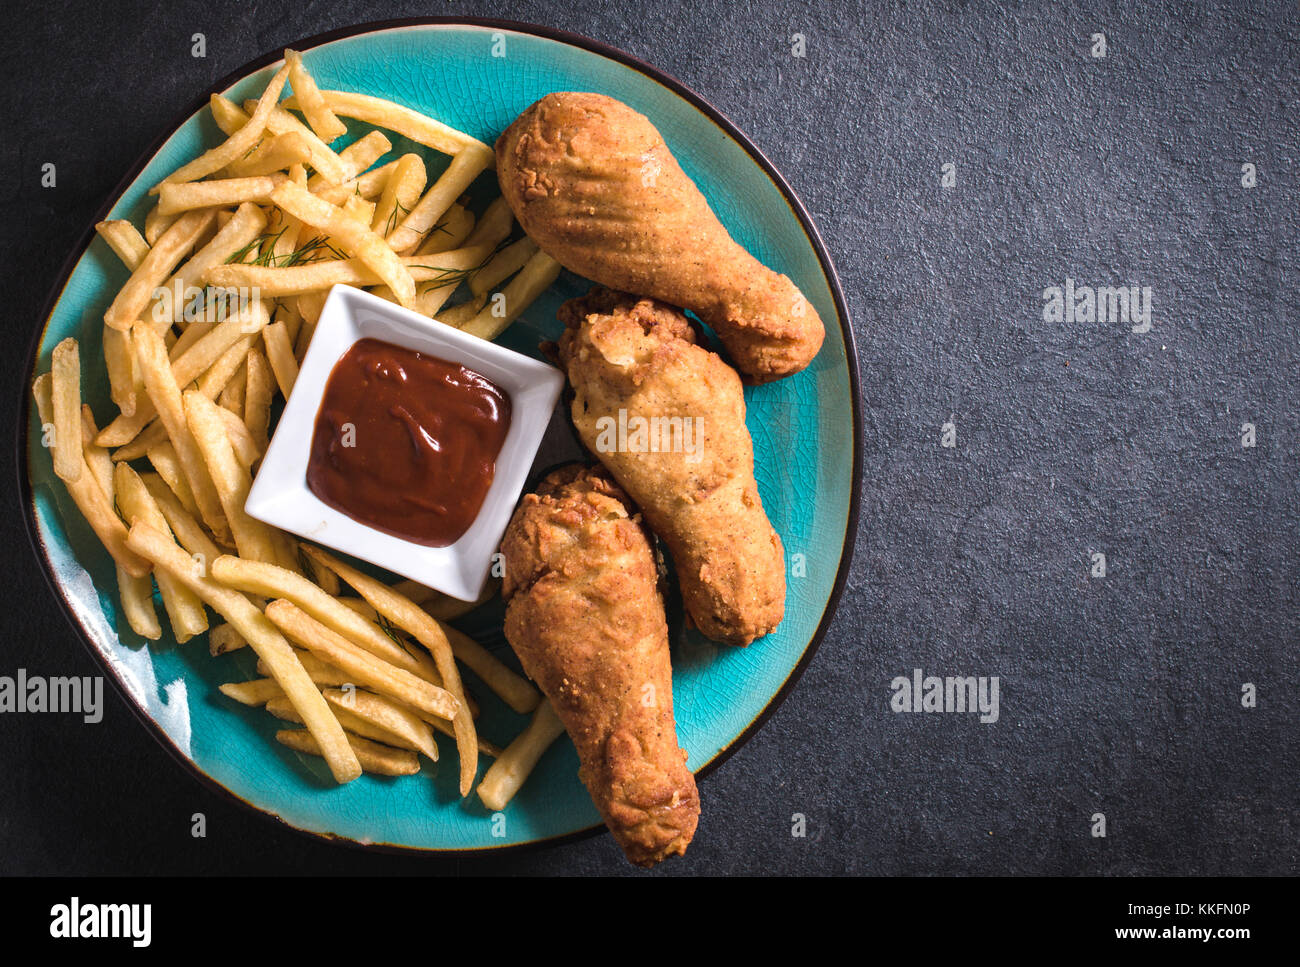 French fries and fried chicken legs on dark background with blank space - Stock Image